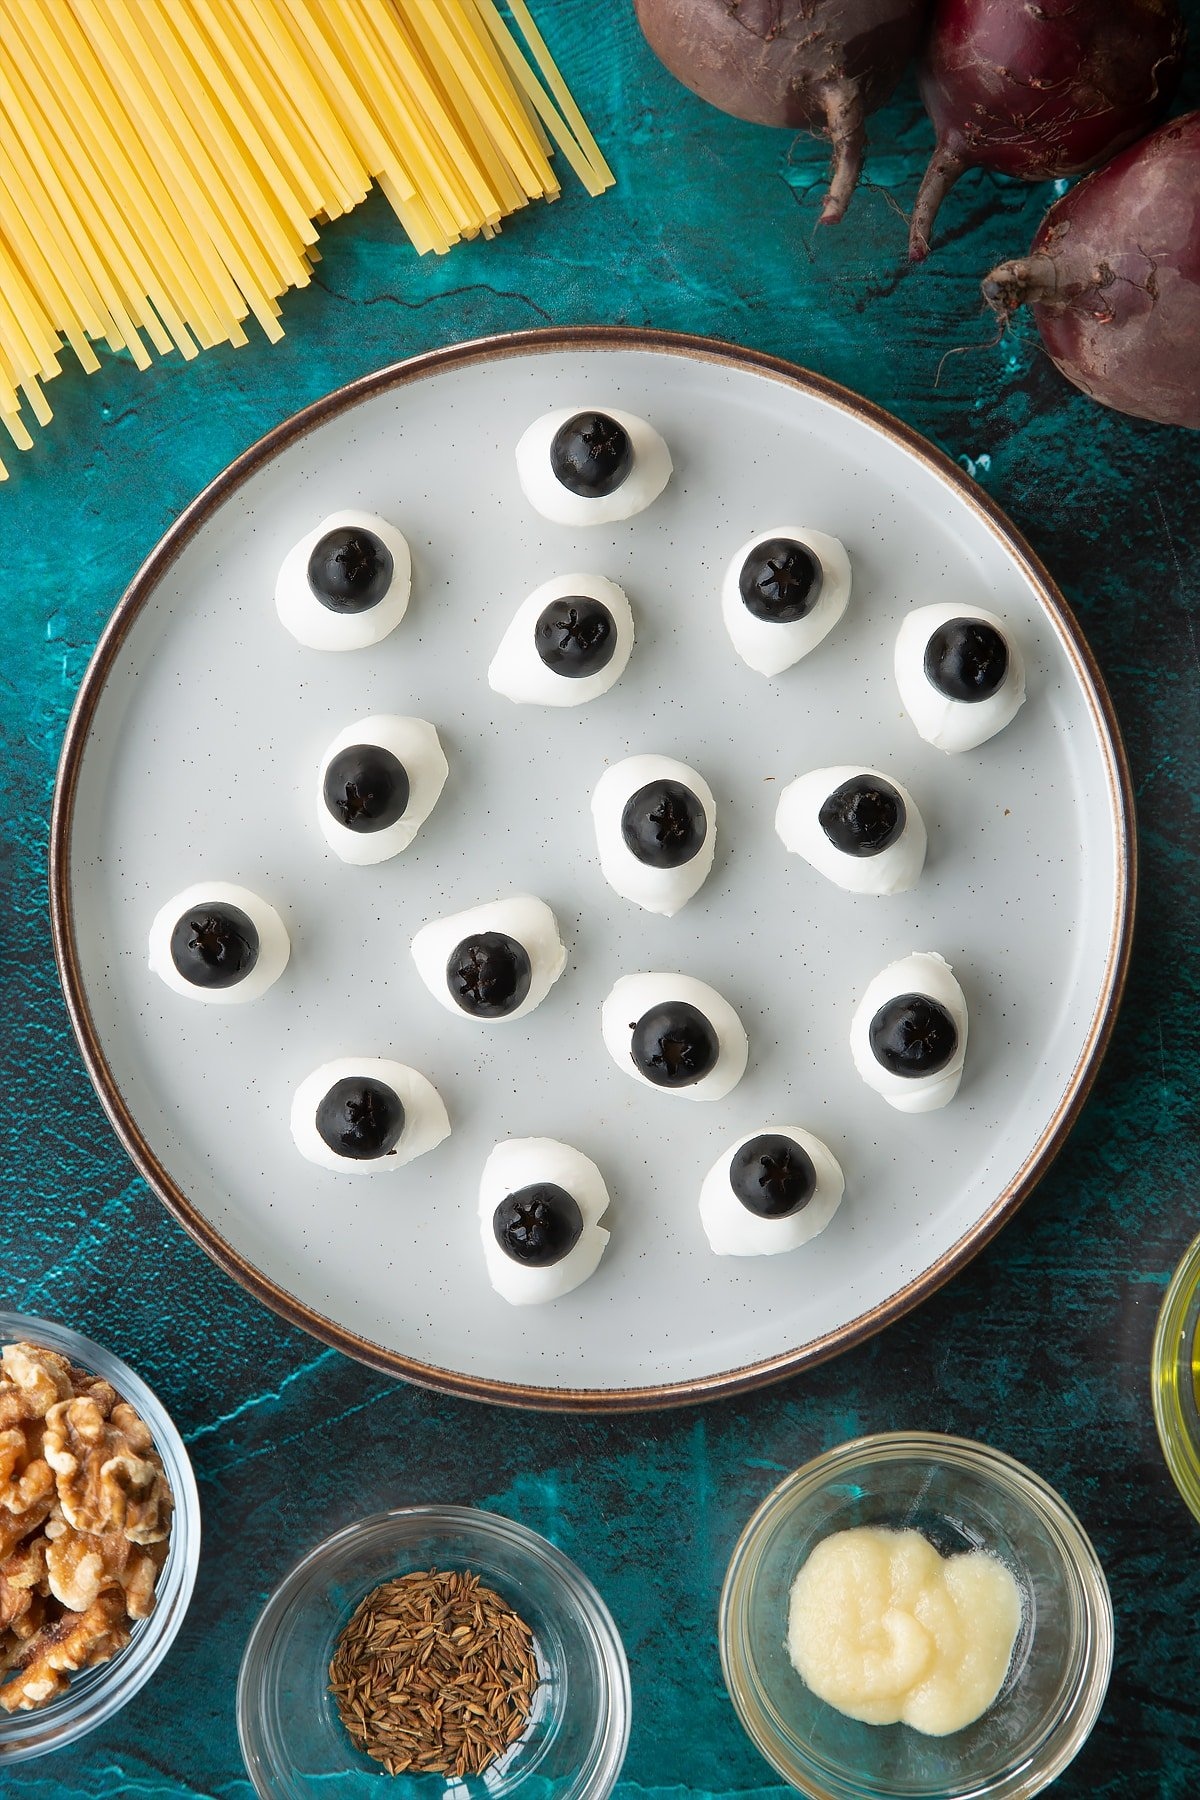 Mozzarella pearls topped with black olives on a plate. Ingredients to make a Halloween pasta recipe surround the plate.